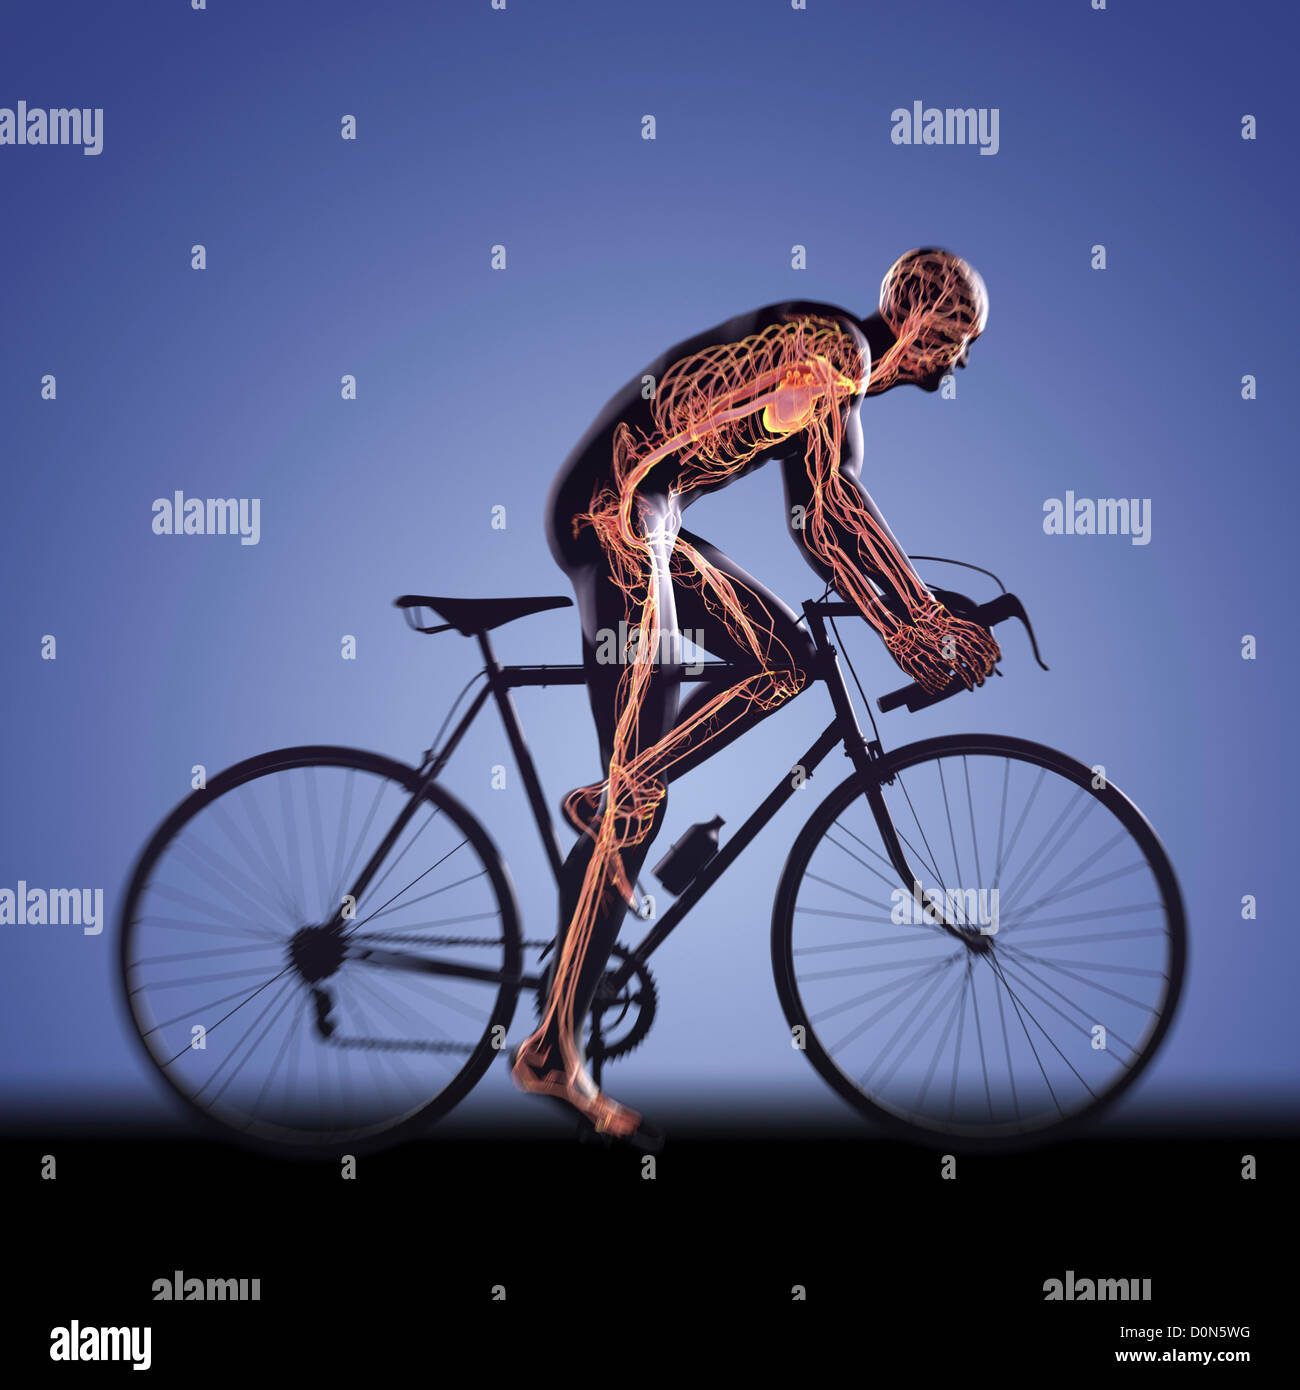 Male Figure Cycling Bicycle Internal Stockfotos & Male Figure ...